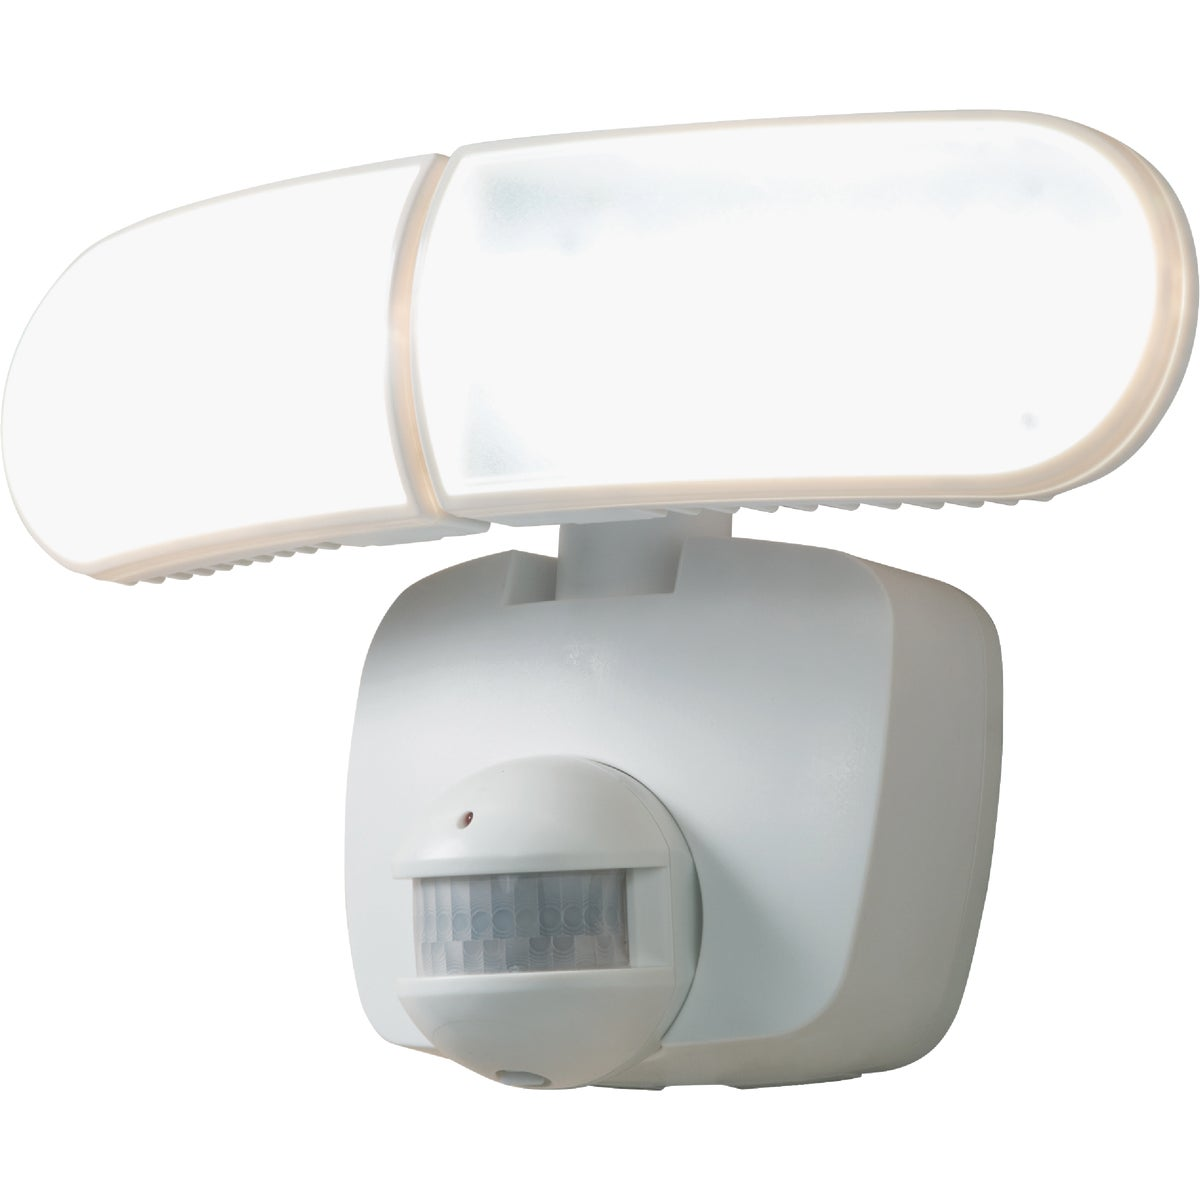 LED SOLAR MOTION LIGHT - MSLED180W by Cooper Lighting